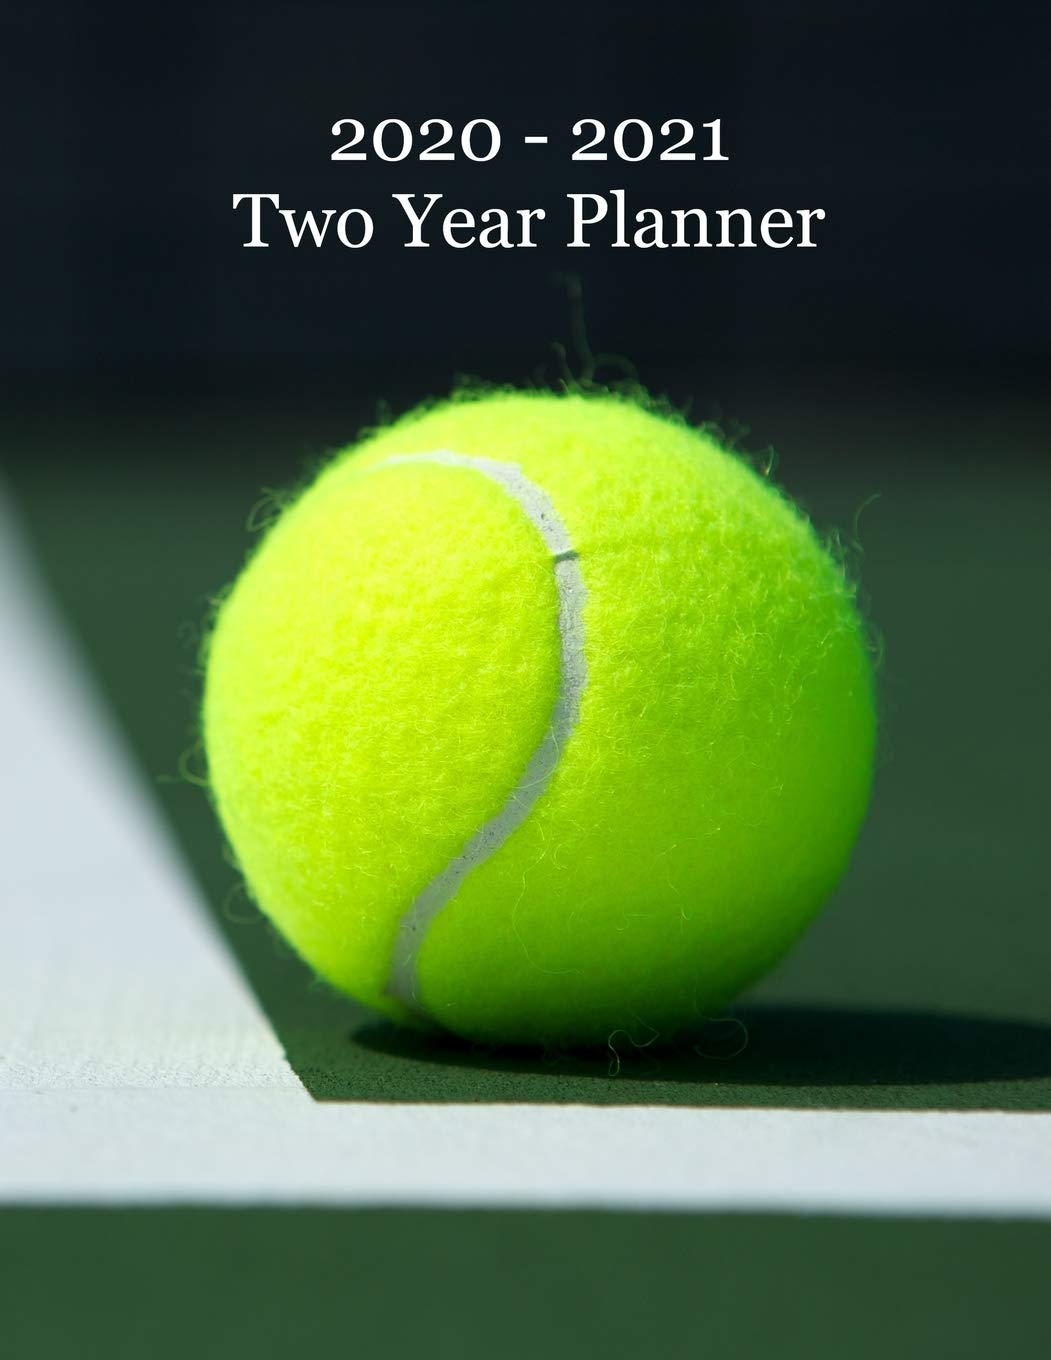 2020 – 2021 Two Year Planner: Tennis Ball on Court Cover